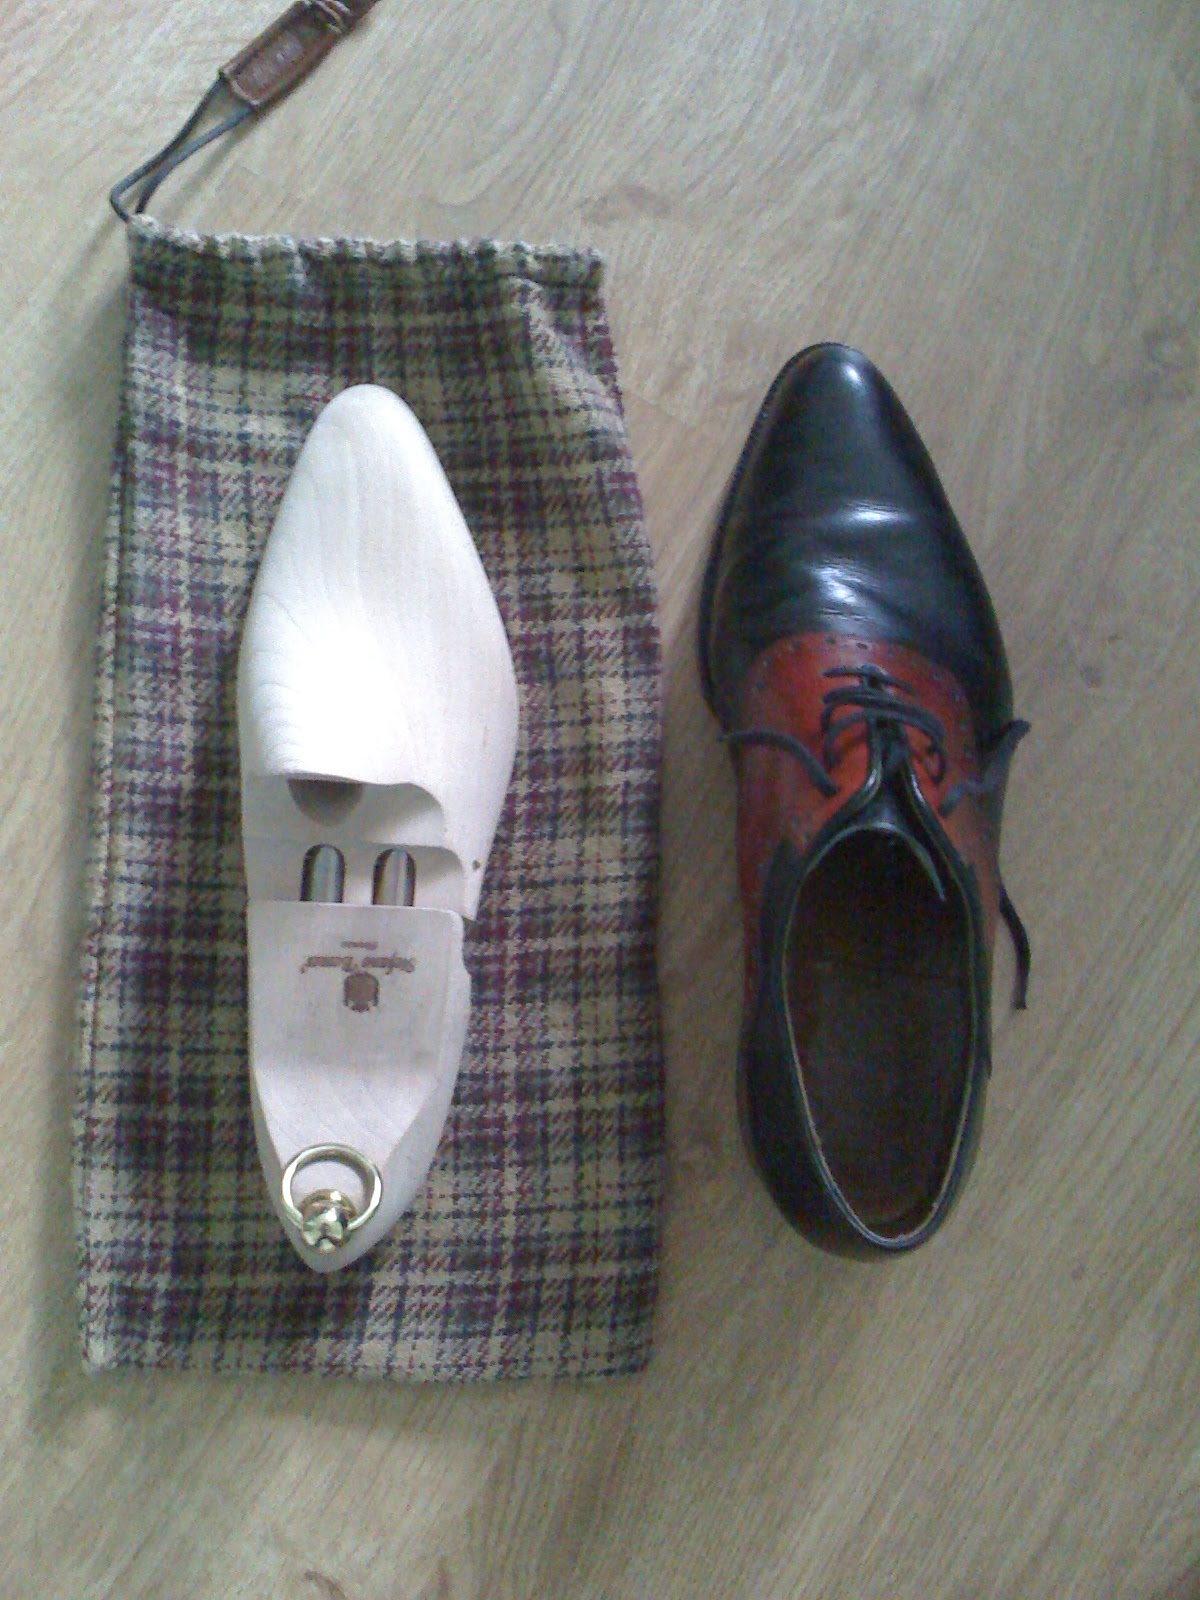 Shoe Care - Why You Should Be Practicing It